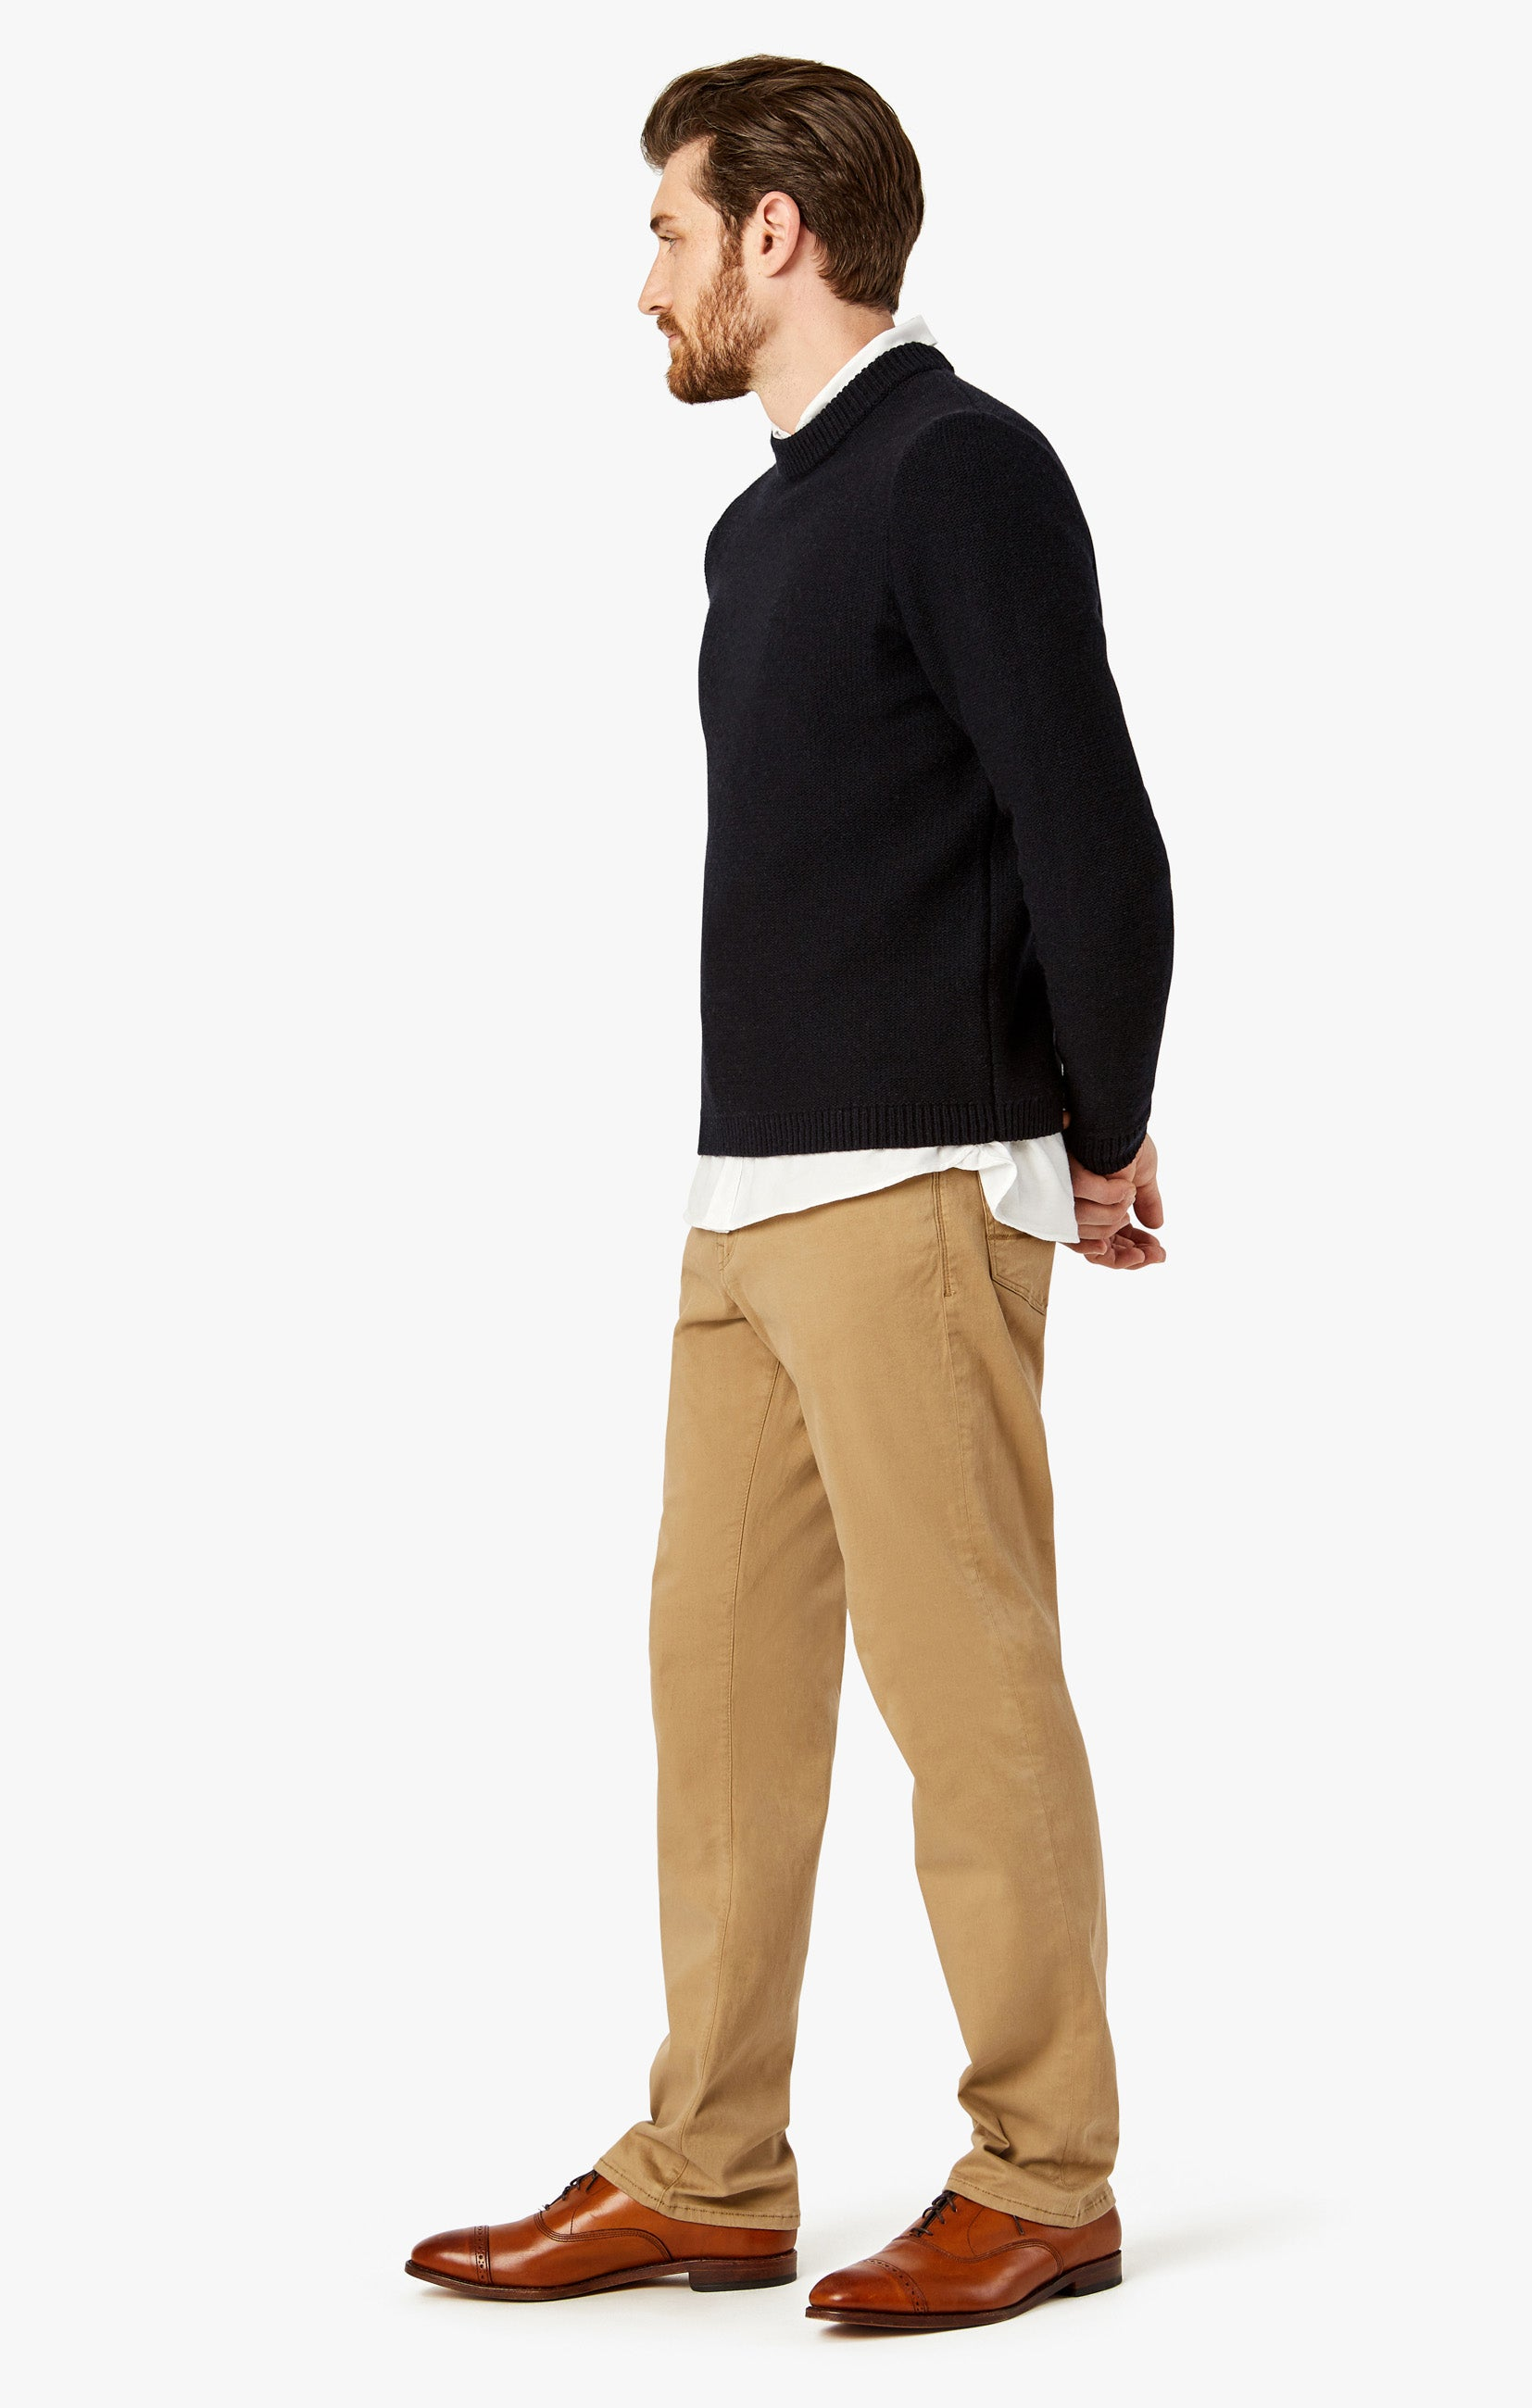 Charisma Relaxed Straight Pants In Khaki Twill Image 2